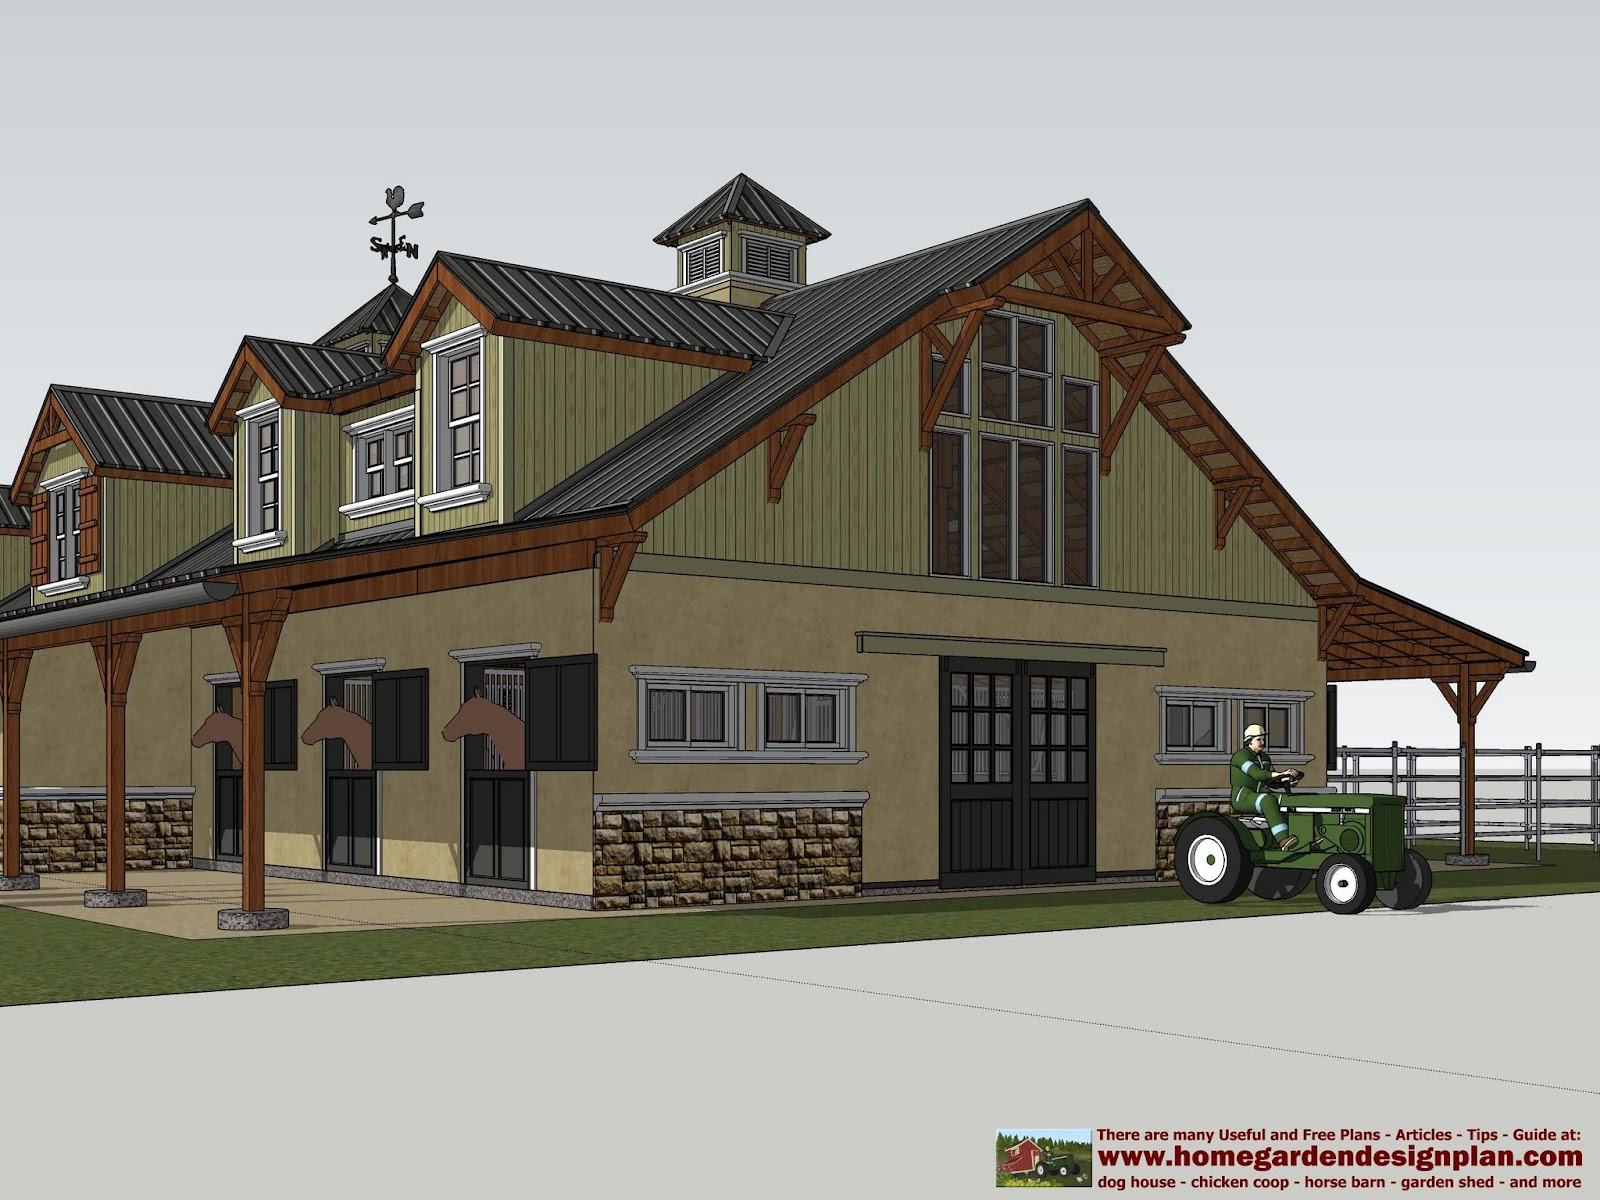 barn plans stable designs building plans for horse - HD1600×1200